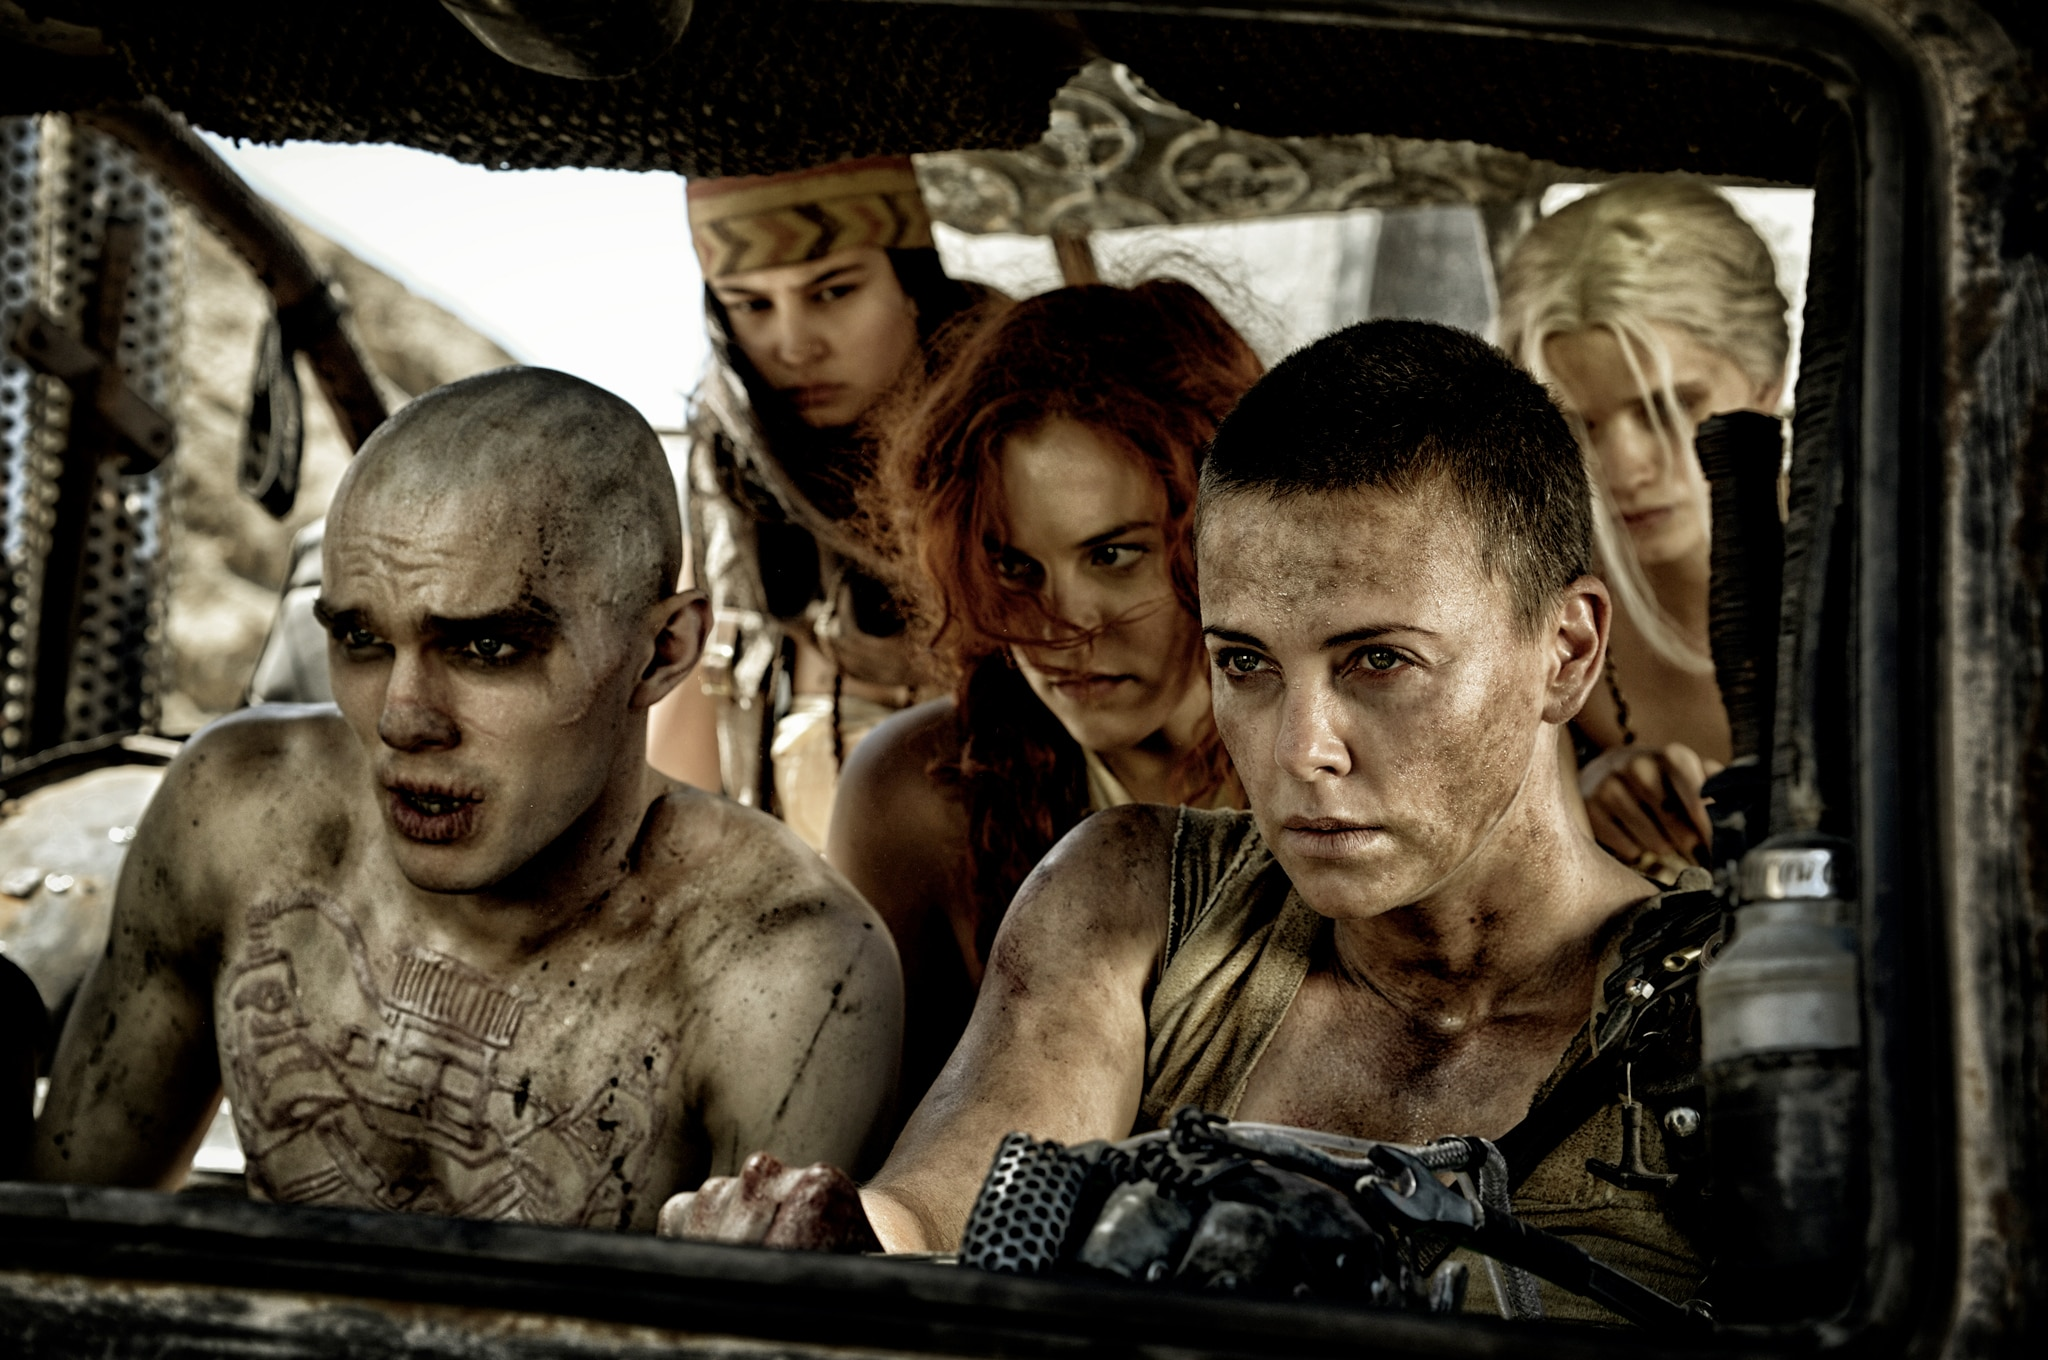 """""""Mad Max: Fury Road"""" hits theaters May 15. Catch the epic trailer and preview action at madmaxmovie.com. Photo courtesy Warner Brothers"""